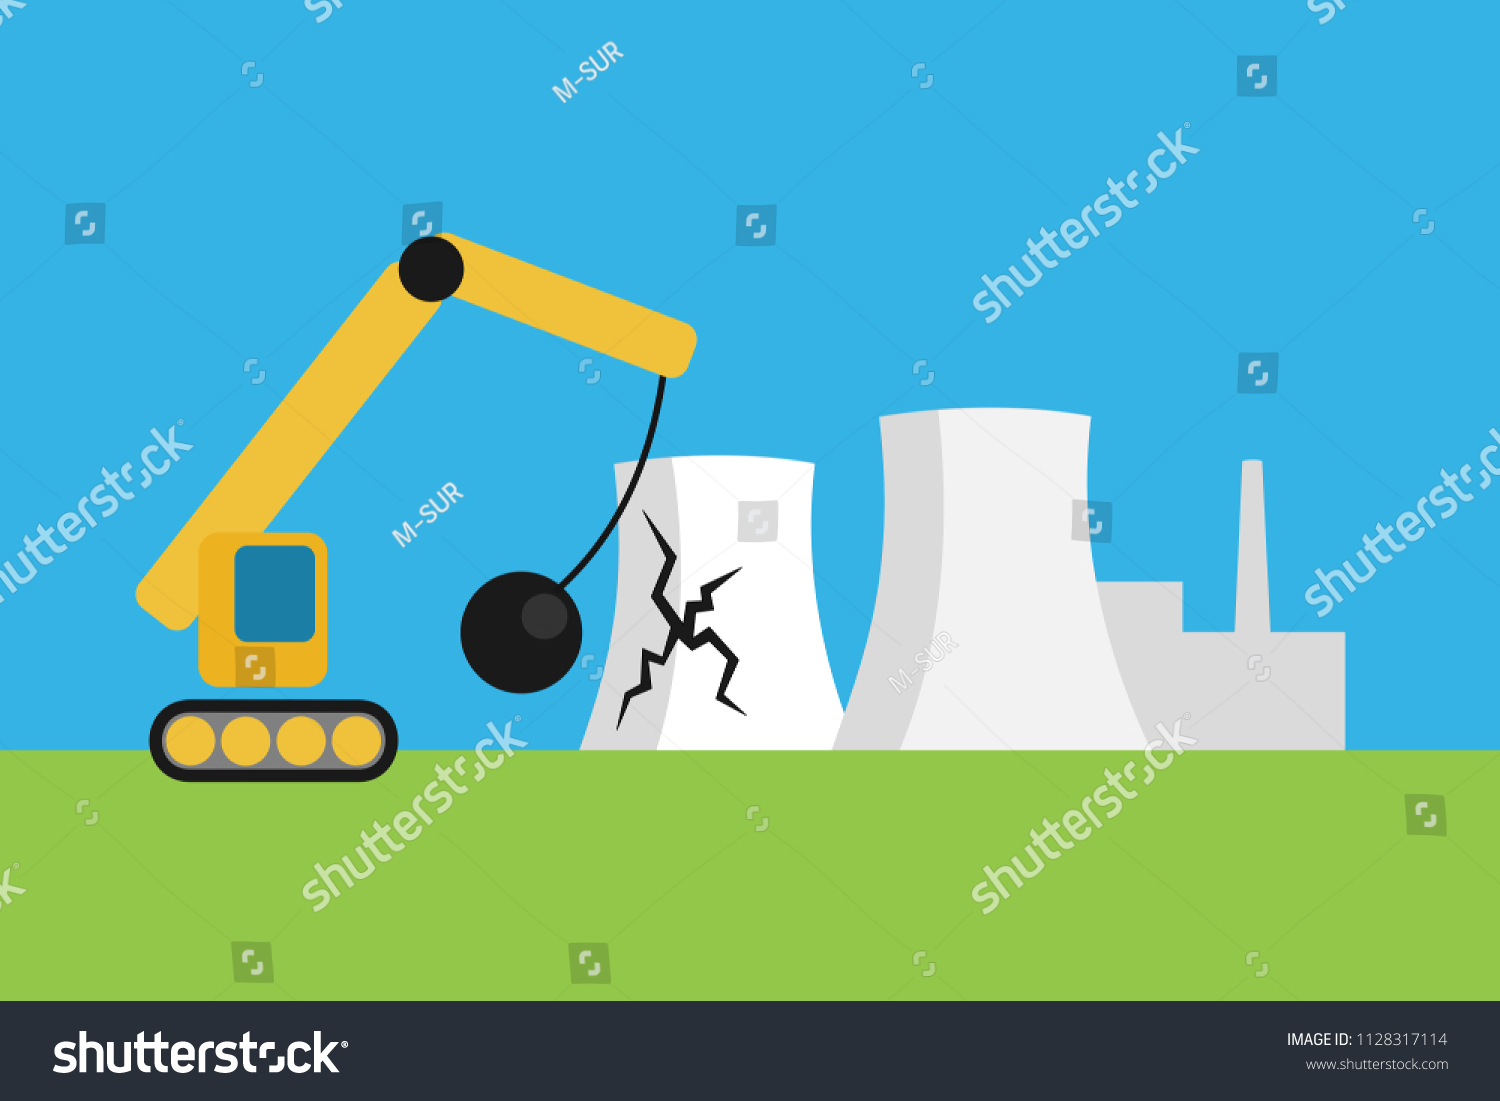 Nuclear Power Plant Phase Out Powerhouse Stock Vector Royalty Free Energy Diagram For Atomic Is Discontinued Closed Abandoned